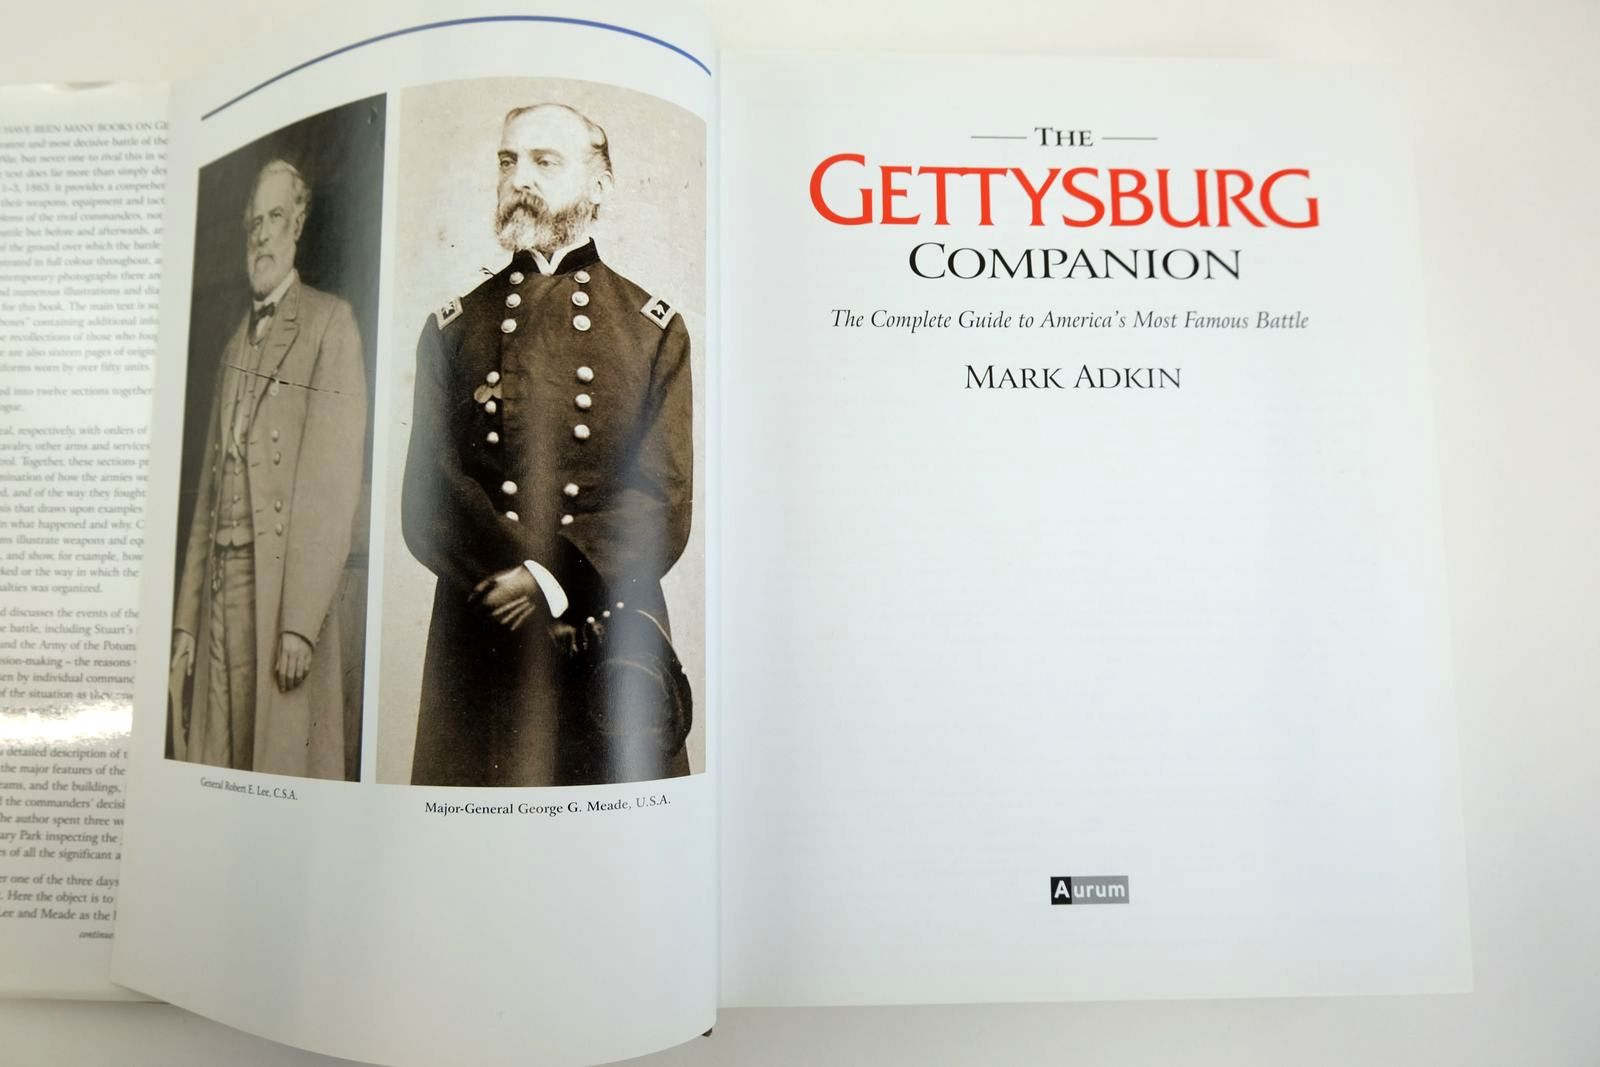 Photo of THE GETTYSBURG COMPANION THE COMPLETE GUIDE TO AMERICA'S MOST FAMOUS BATTLE written by Adkin, Mark published by Aurum Press (STOCK CODE: 2133486)  for sale by Stella & Rose's Books